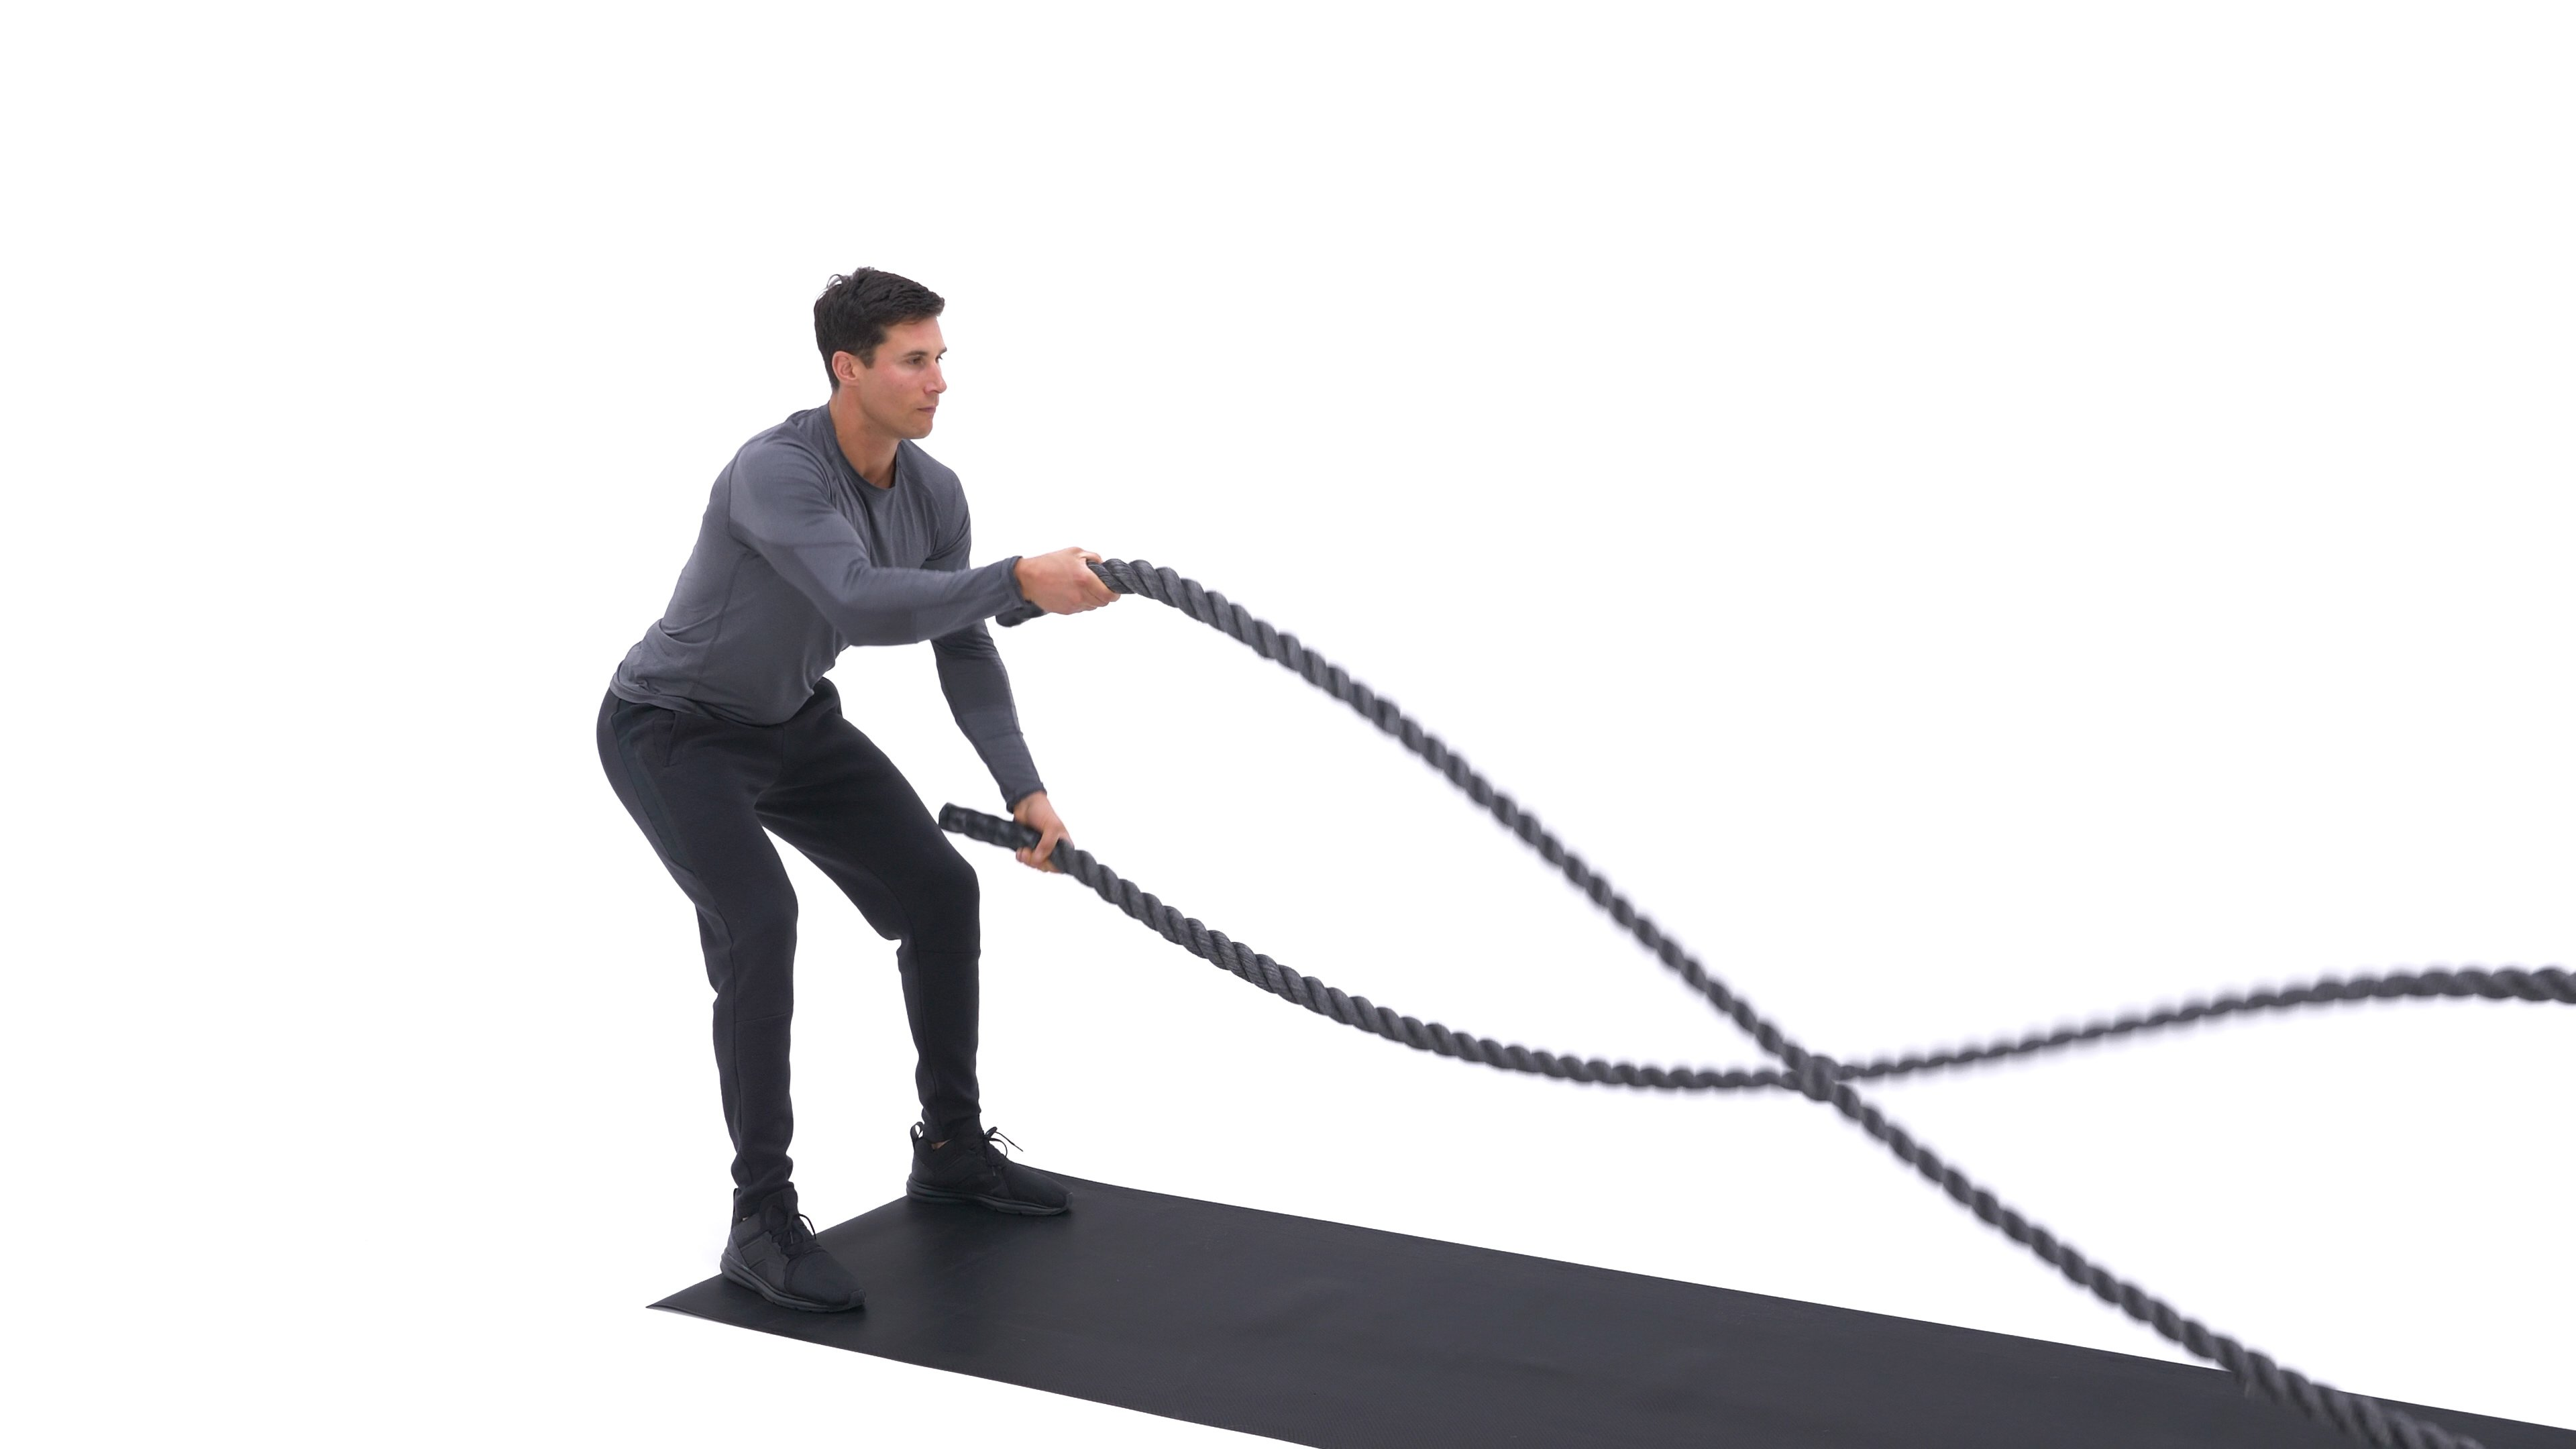 Battle ropes image